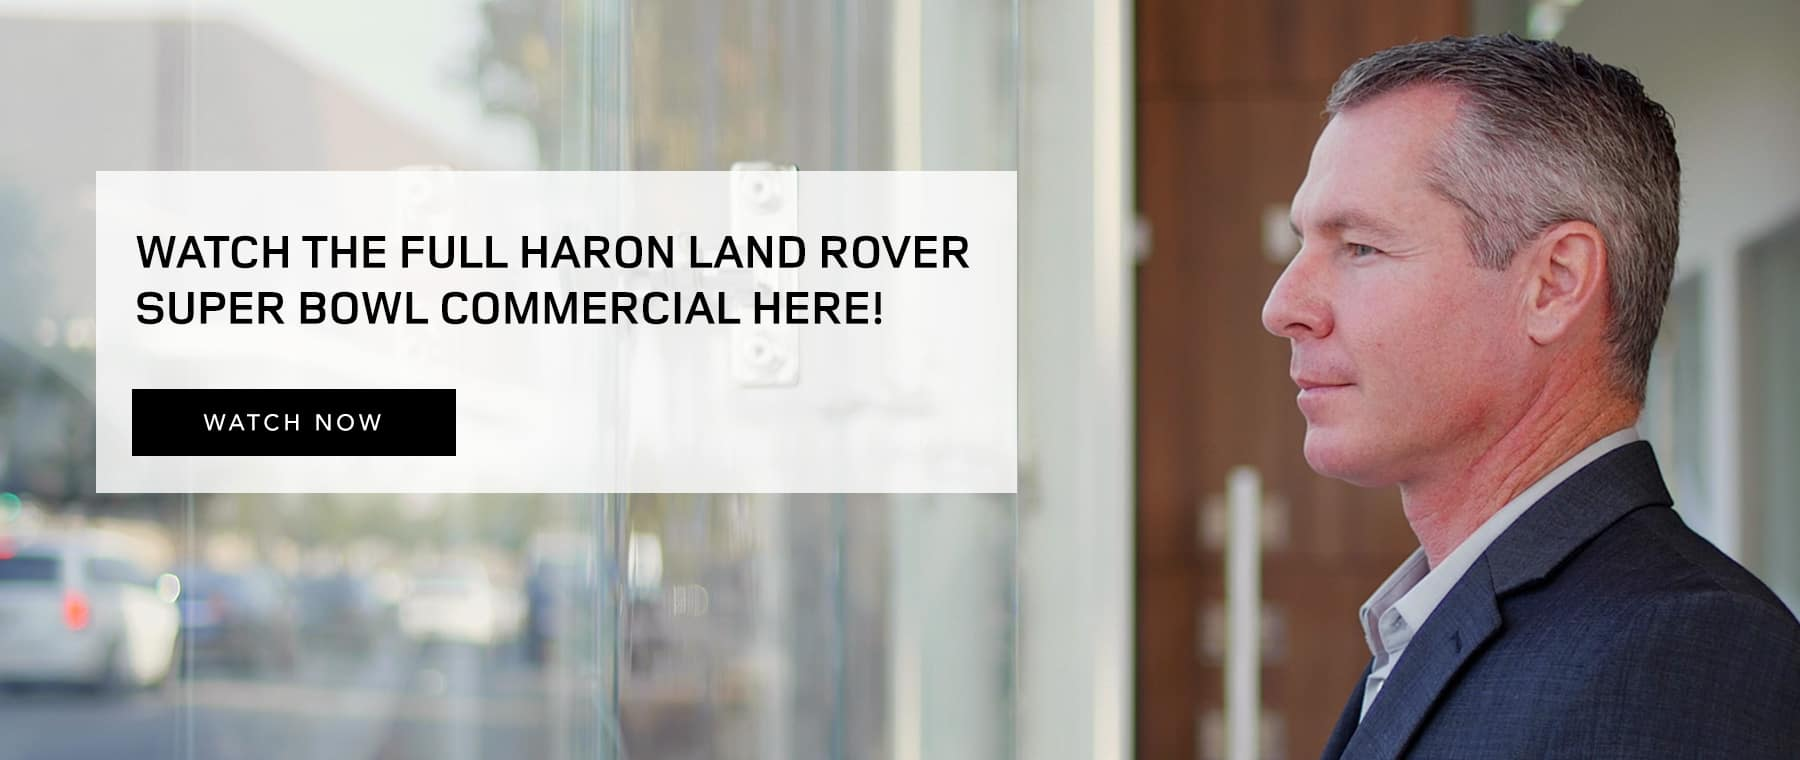 Haron Land Rover Super Bowl Commercial